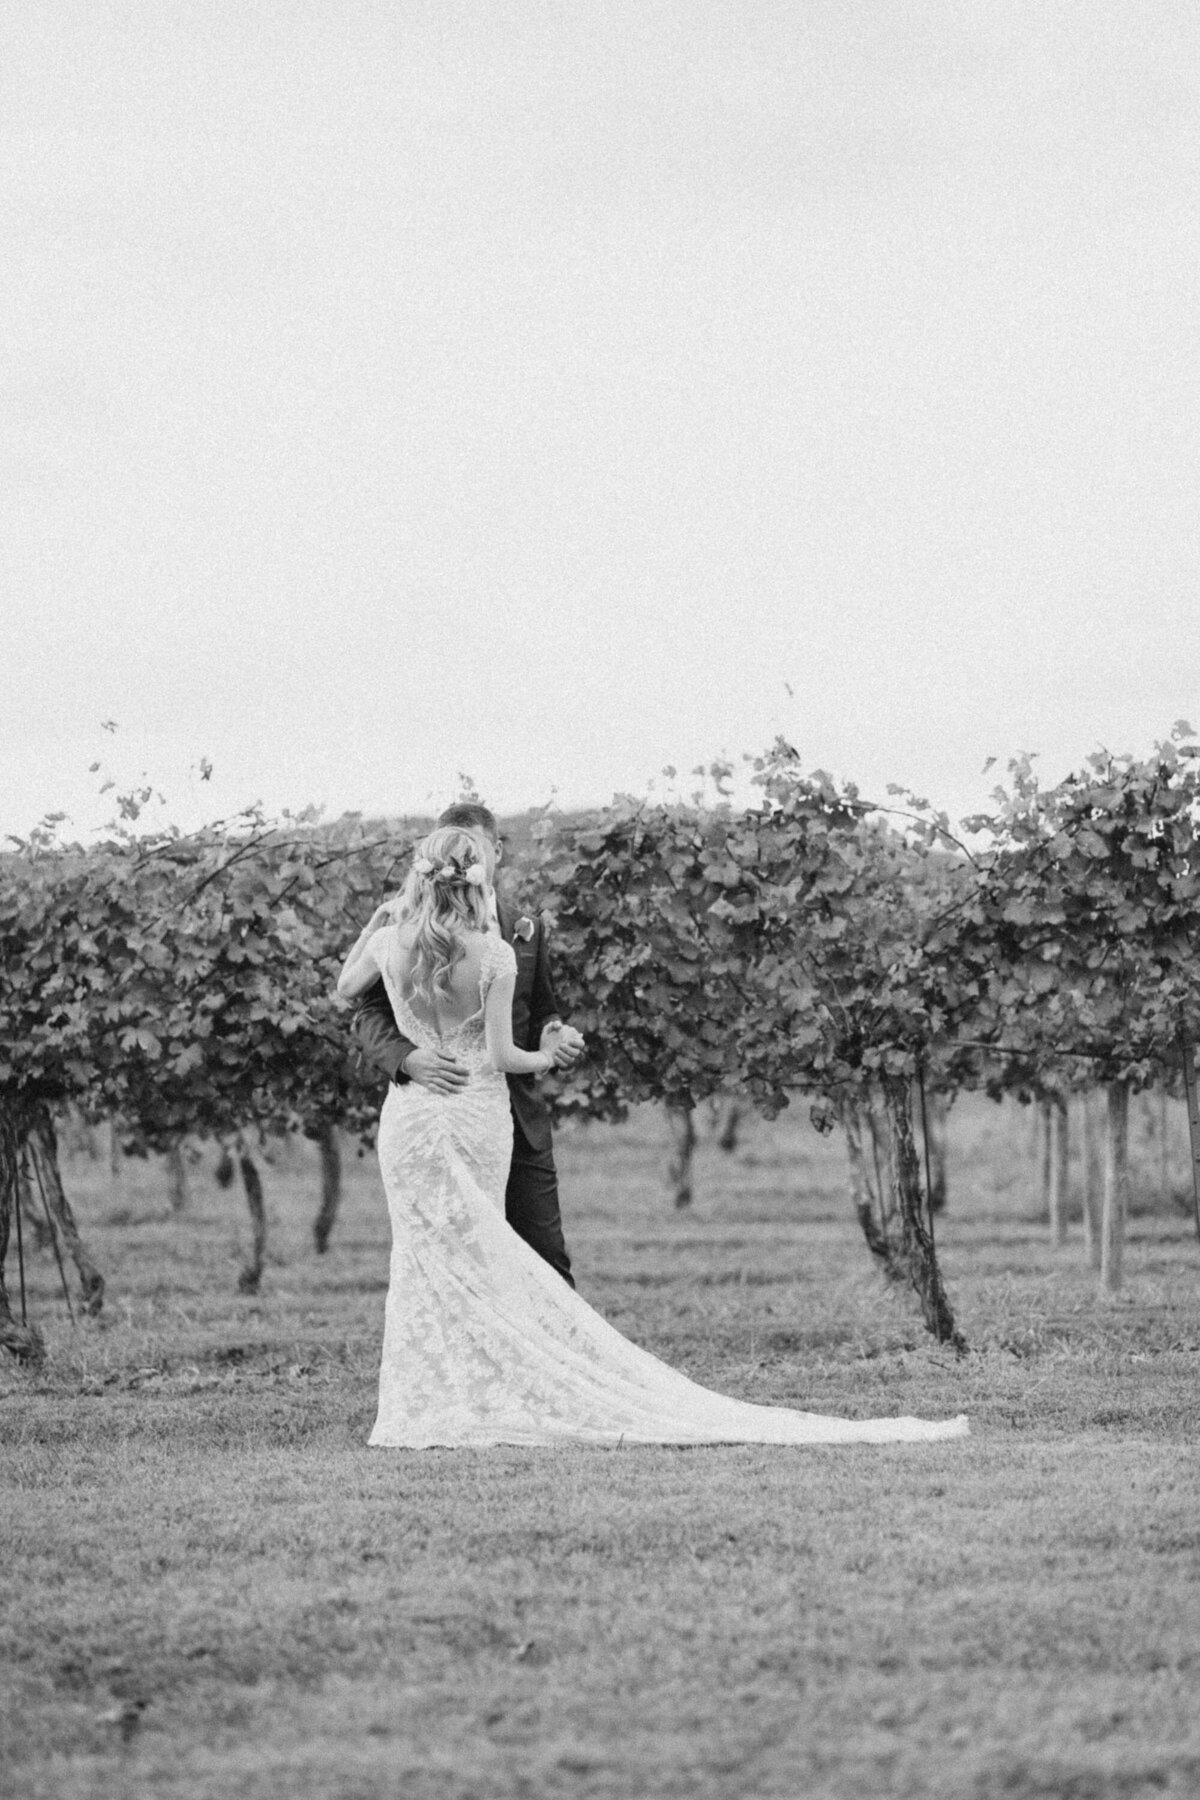 audra-jones-photography-keswick-vineyards-wedding-emma-matthias-5